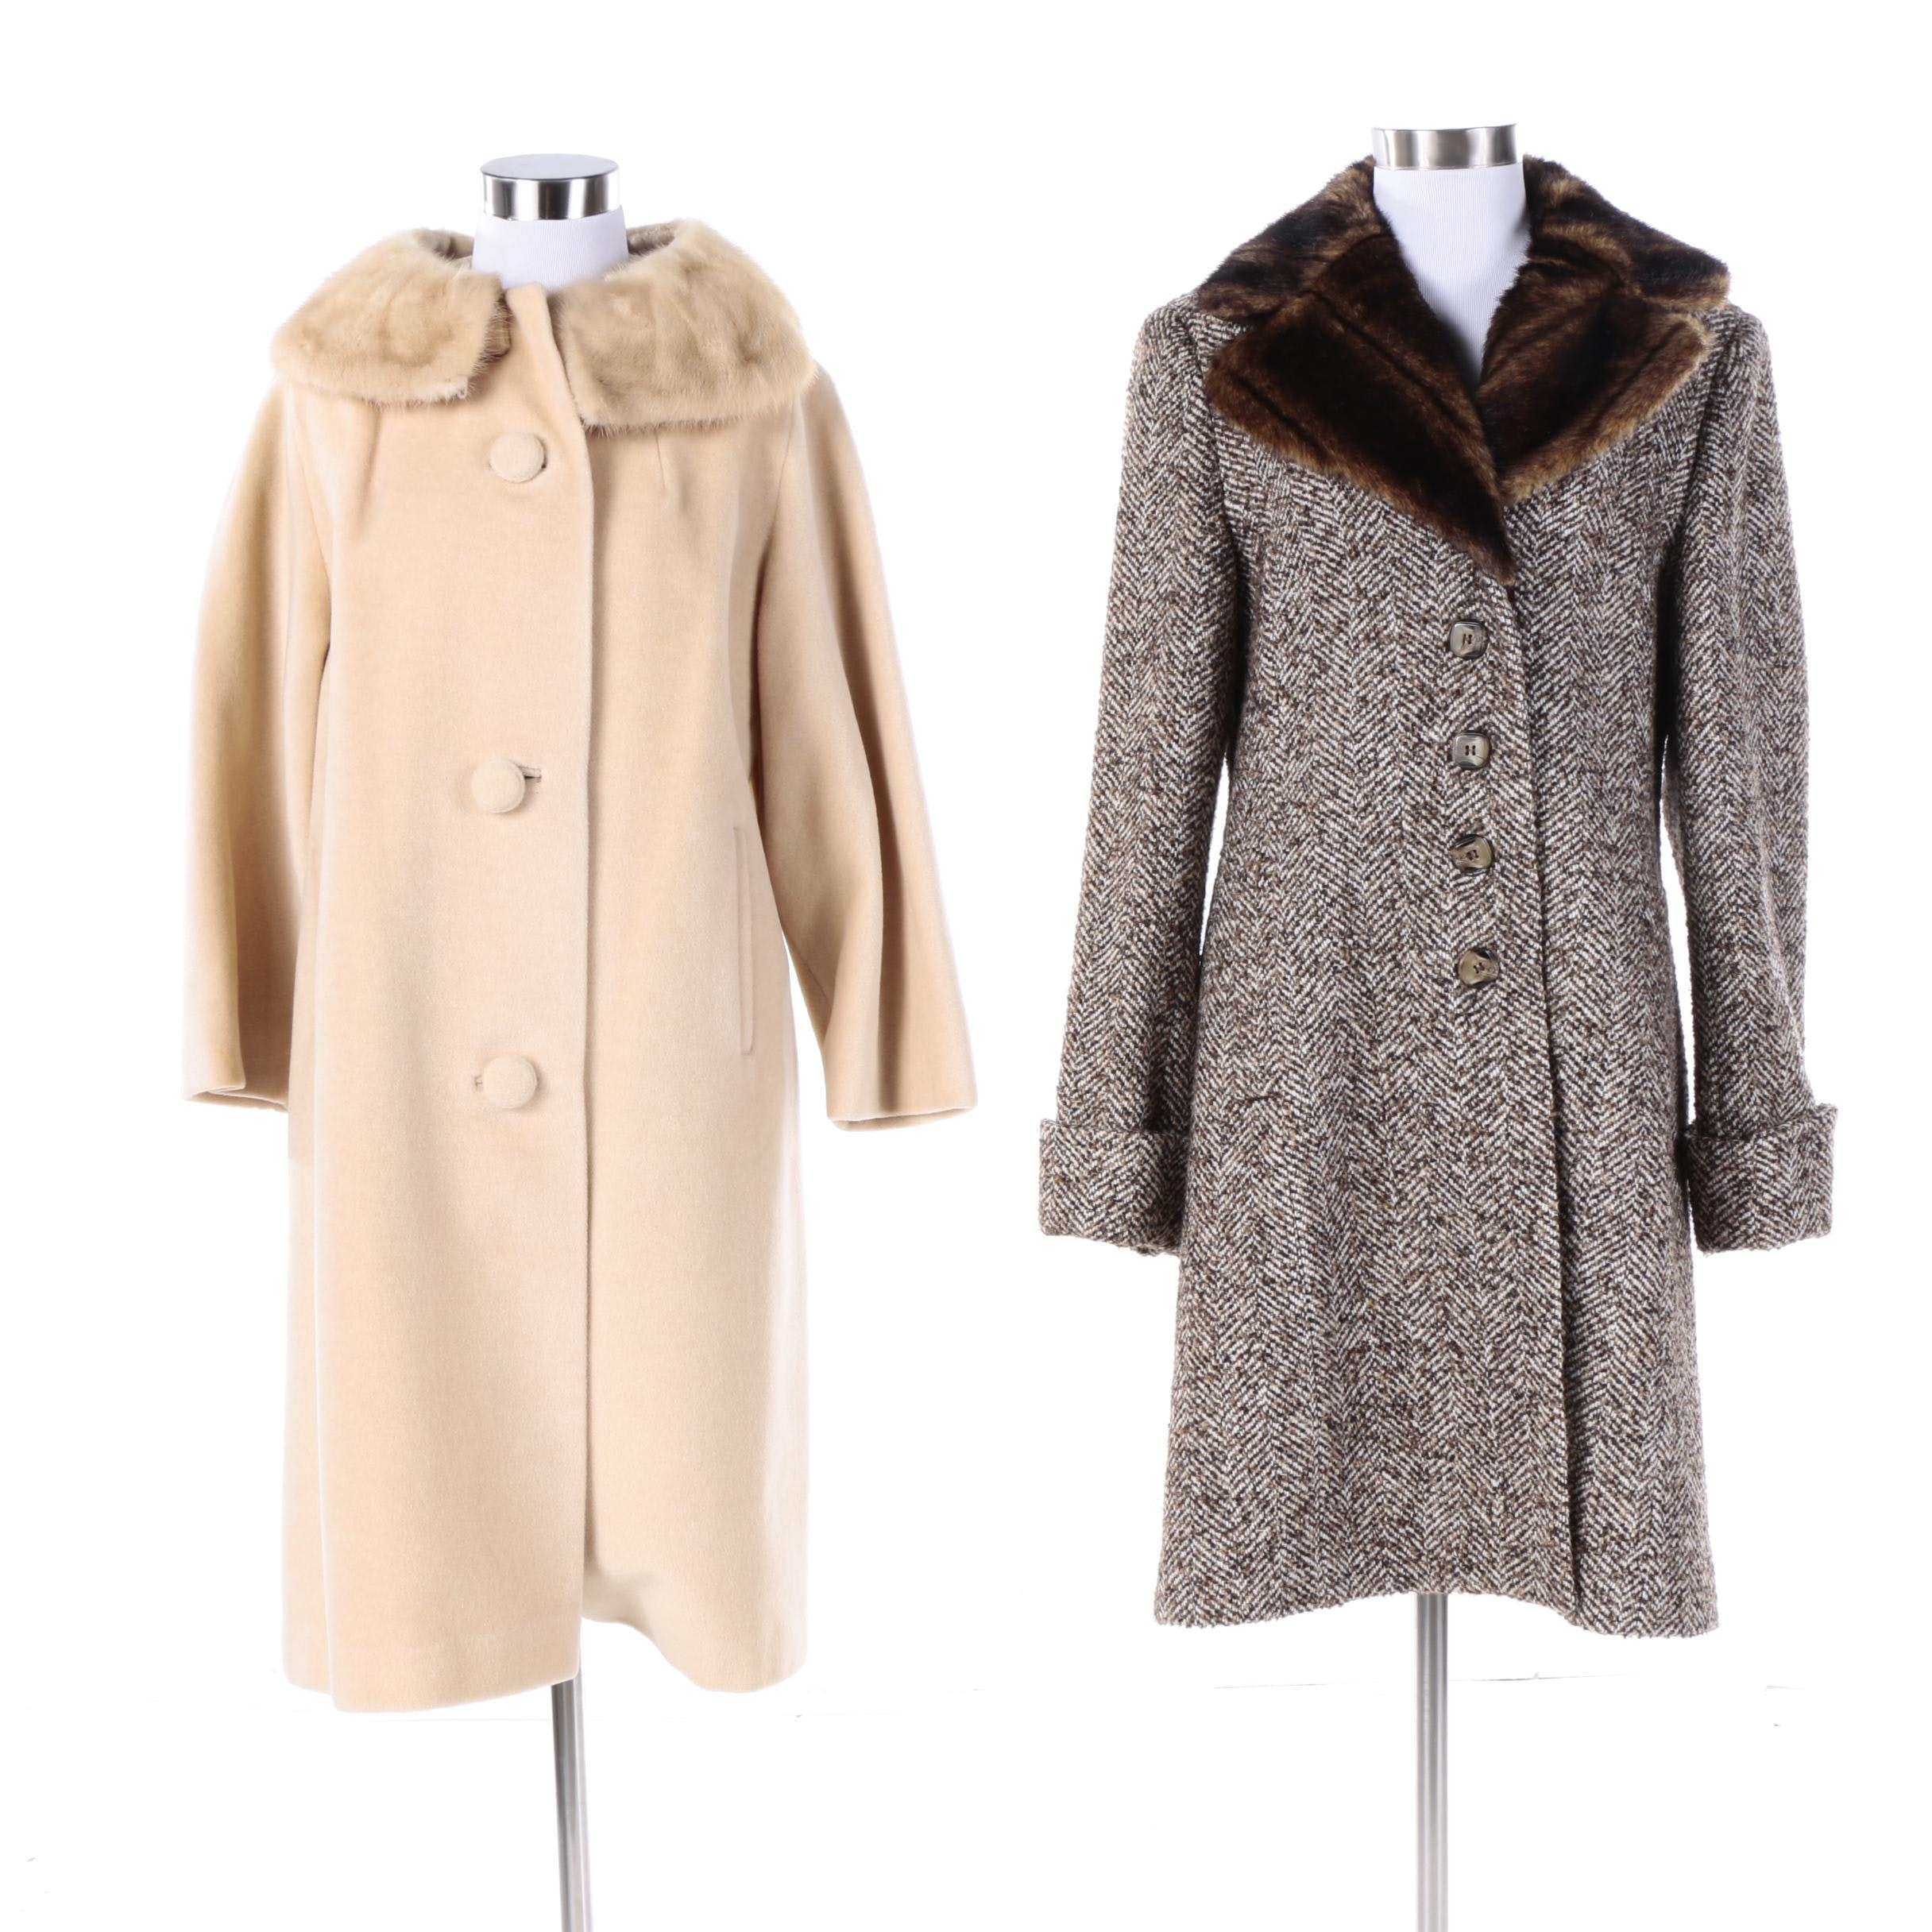 Women's Overcoats Including Mink Fur and Faux Fur Collars